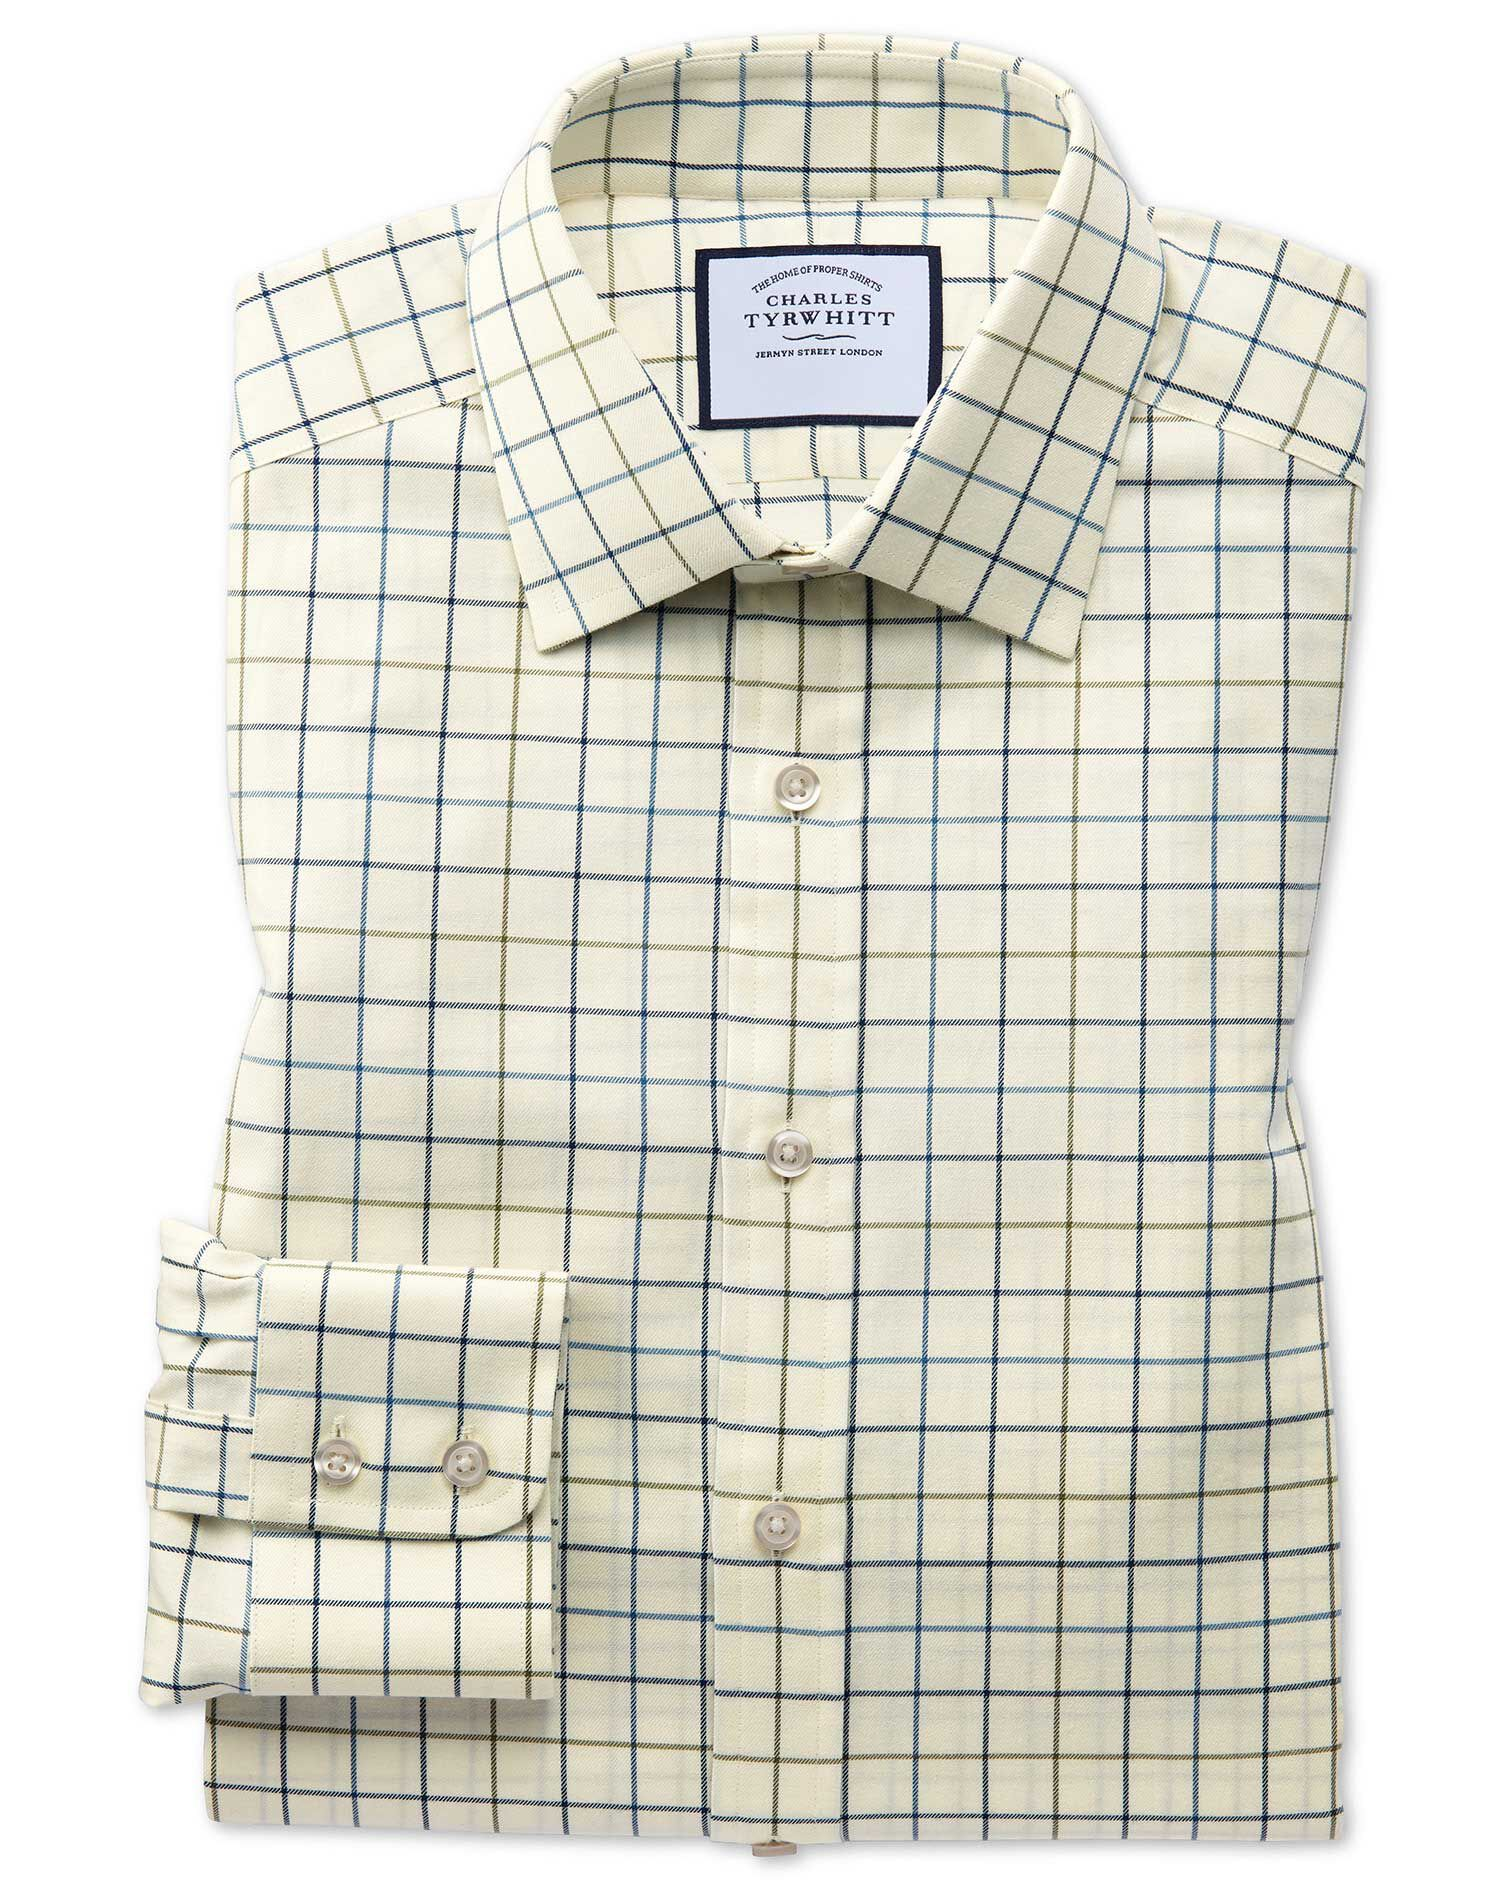 Slim Fit Navy and Green Tattersall Country Check Cotton Formal Shirt Single Cuff Size 17/35 by Charl